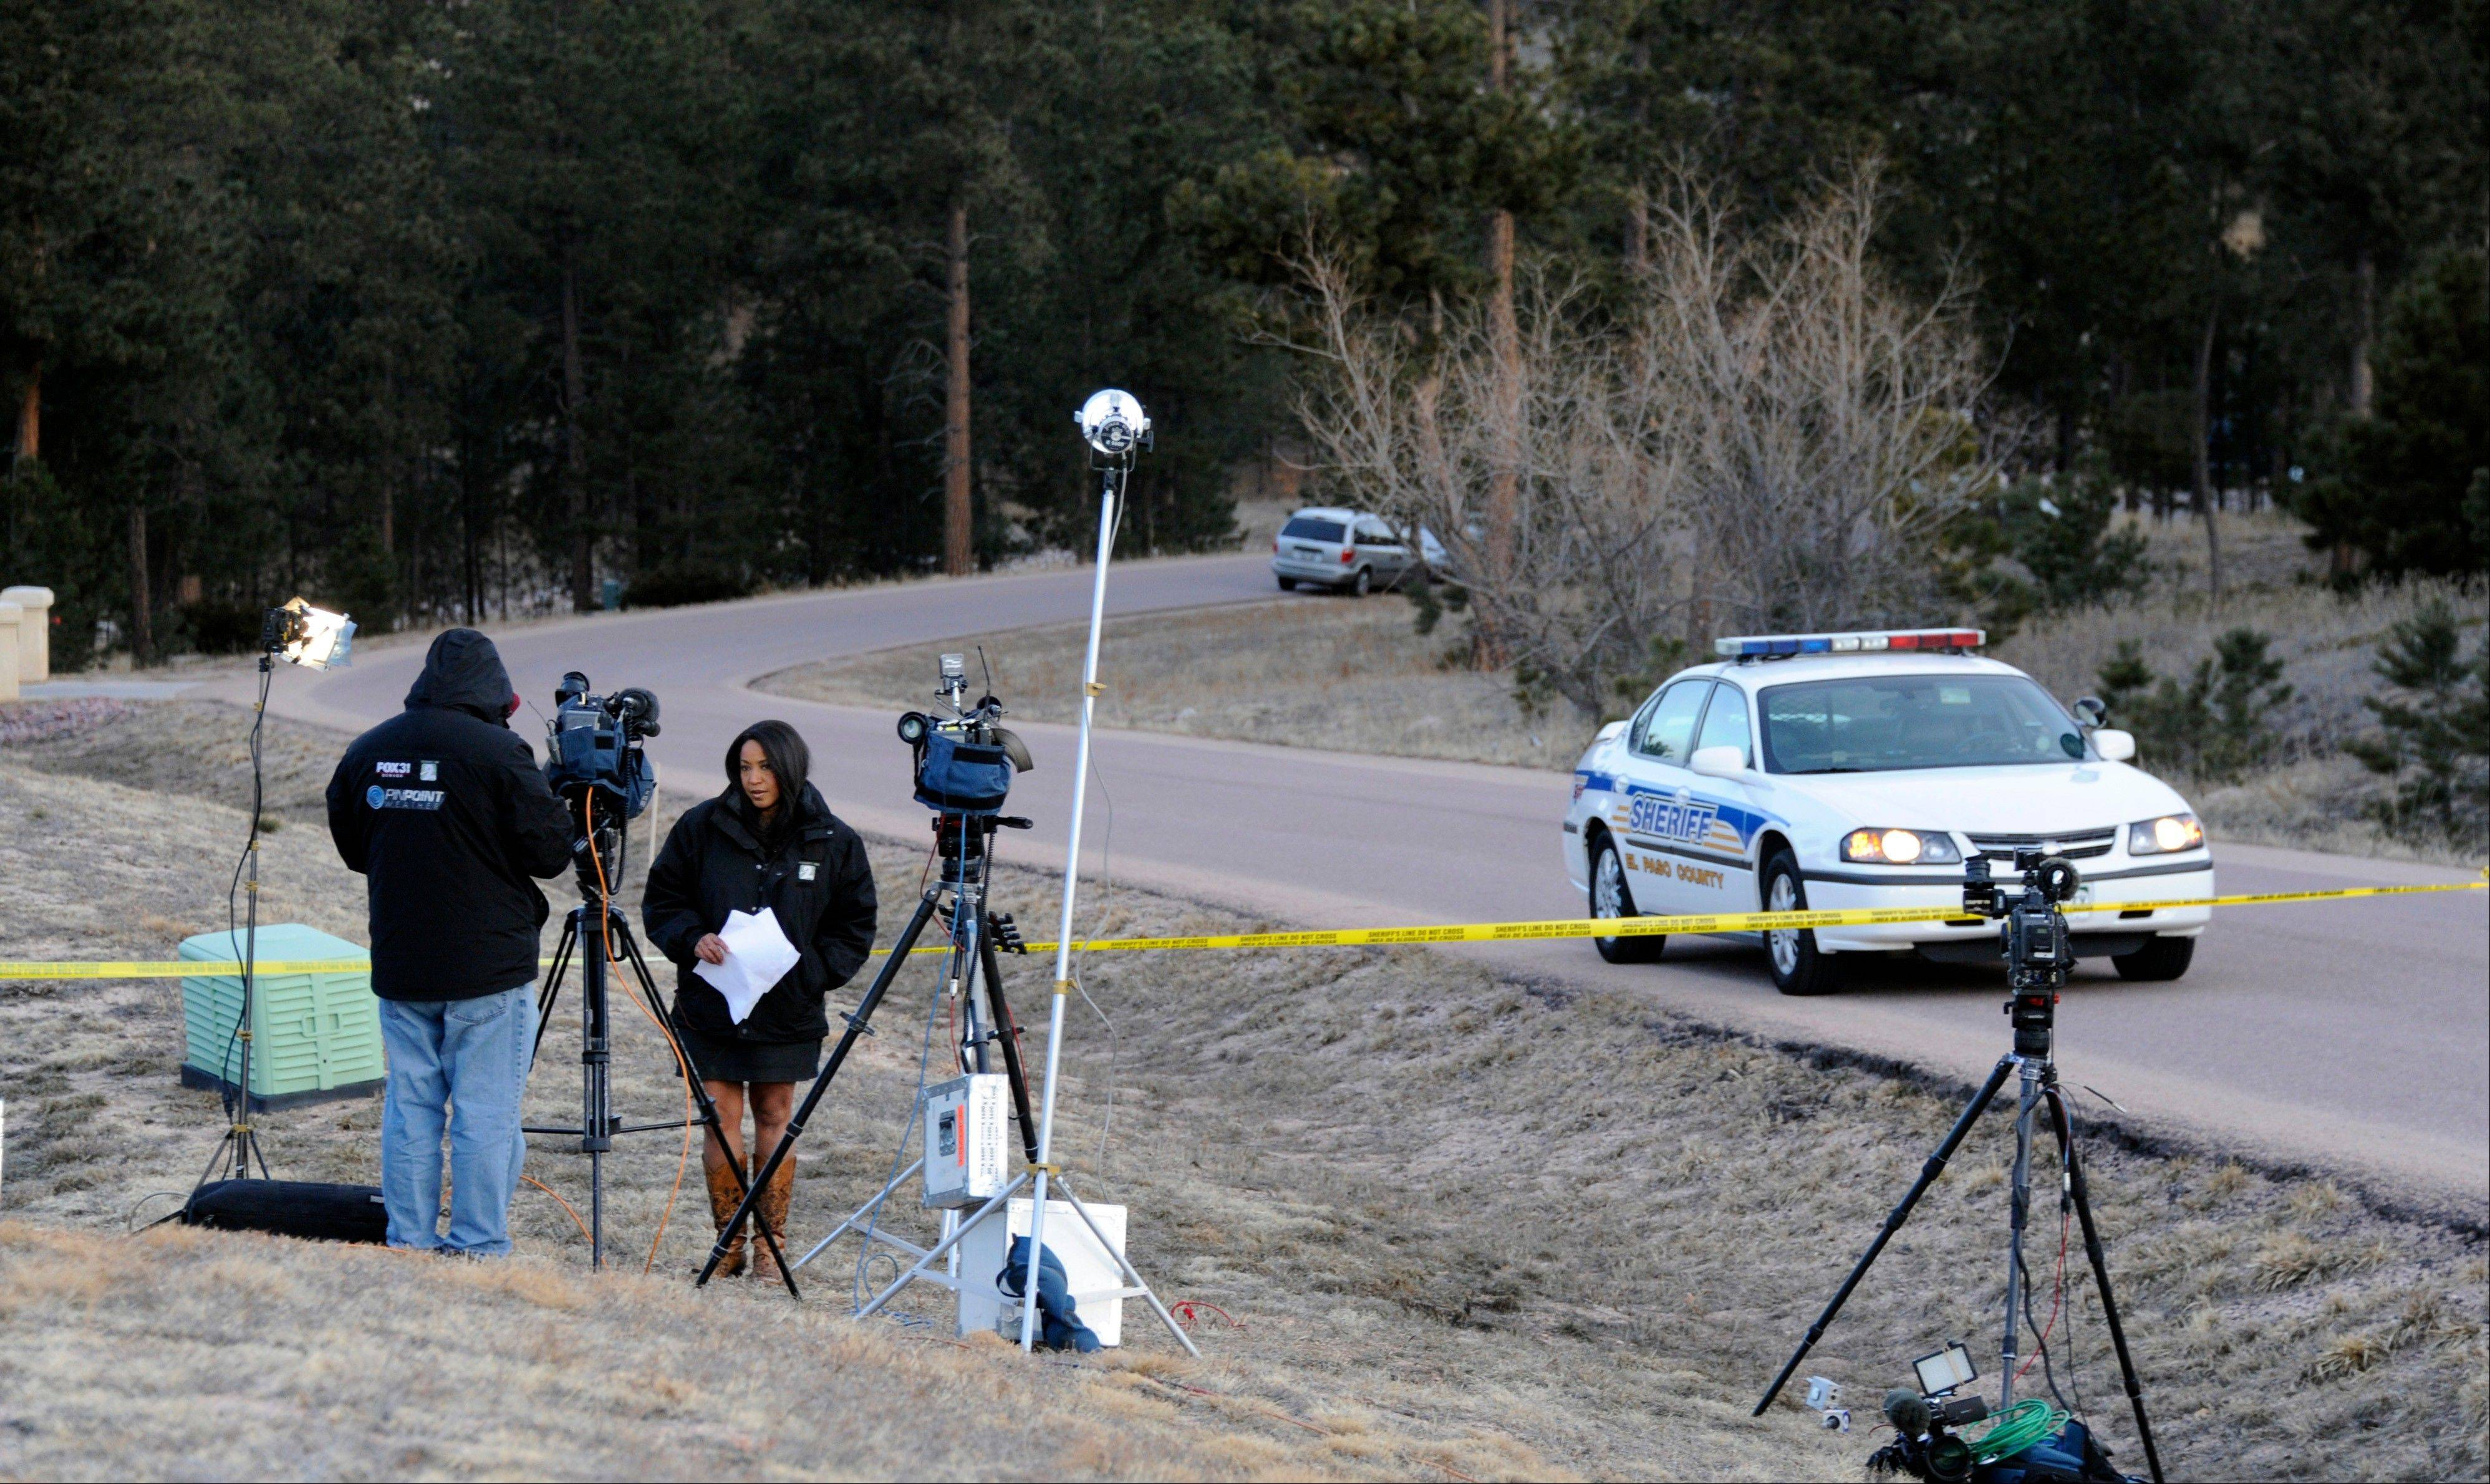 Journalists wait to report Wednesday morning, March 20, 2013, at the scene of an overnight shooting in Monument, Colo., that left Colorado Department of Corrections Director Tom Clements dead at his home. Clements was shot and killed Tuesday evening when he answered the front door of his house, and police are searching for the gunman.